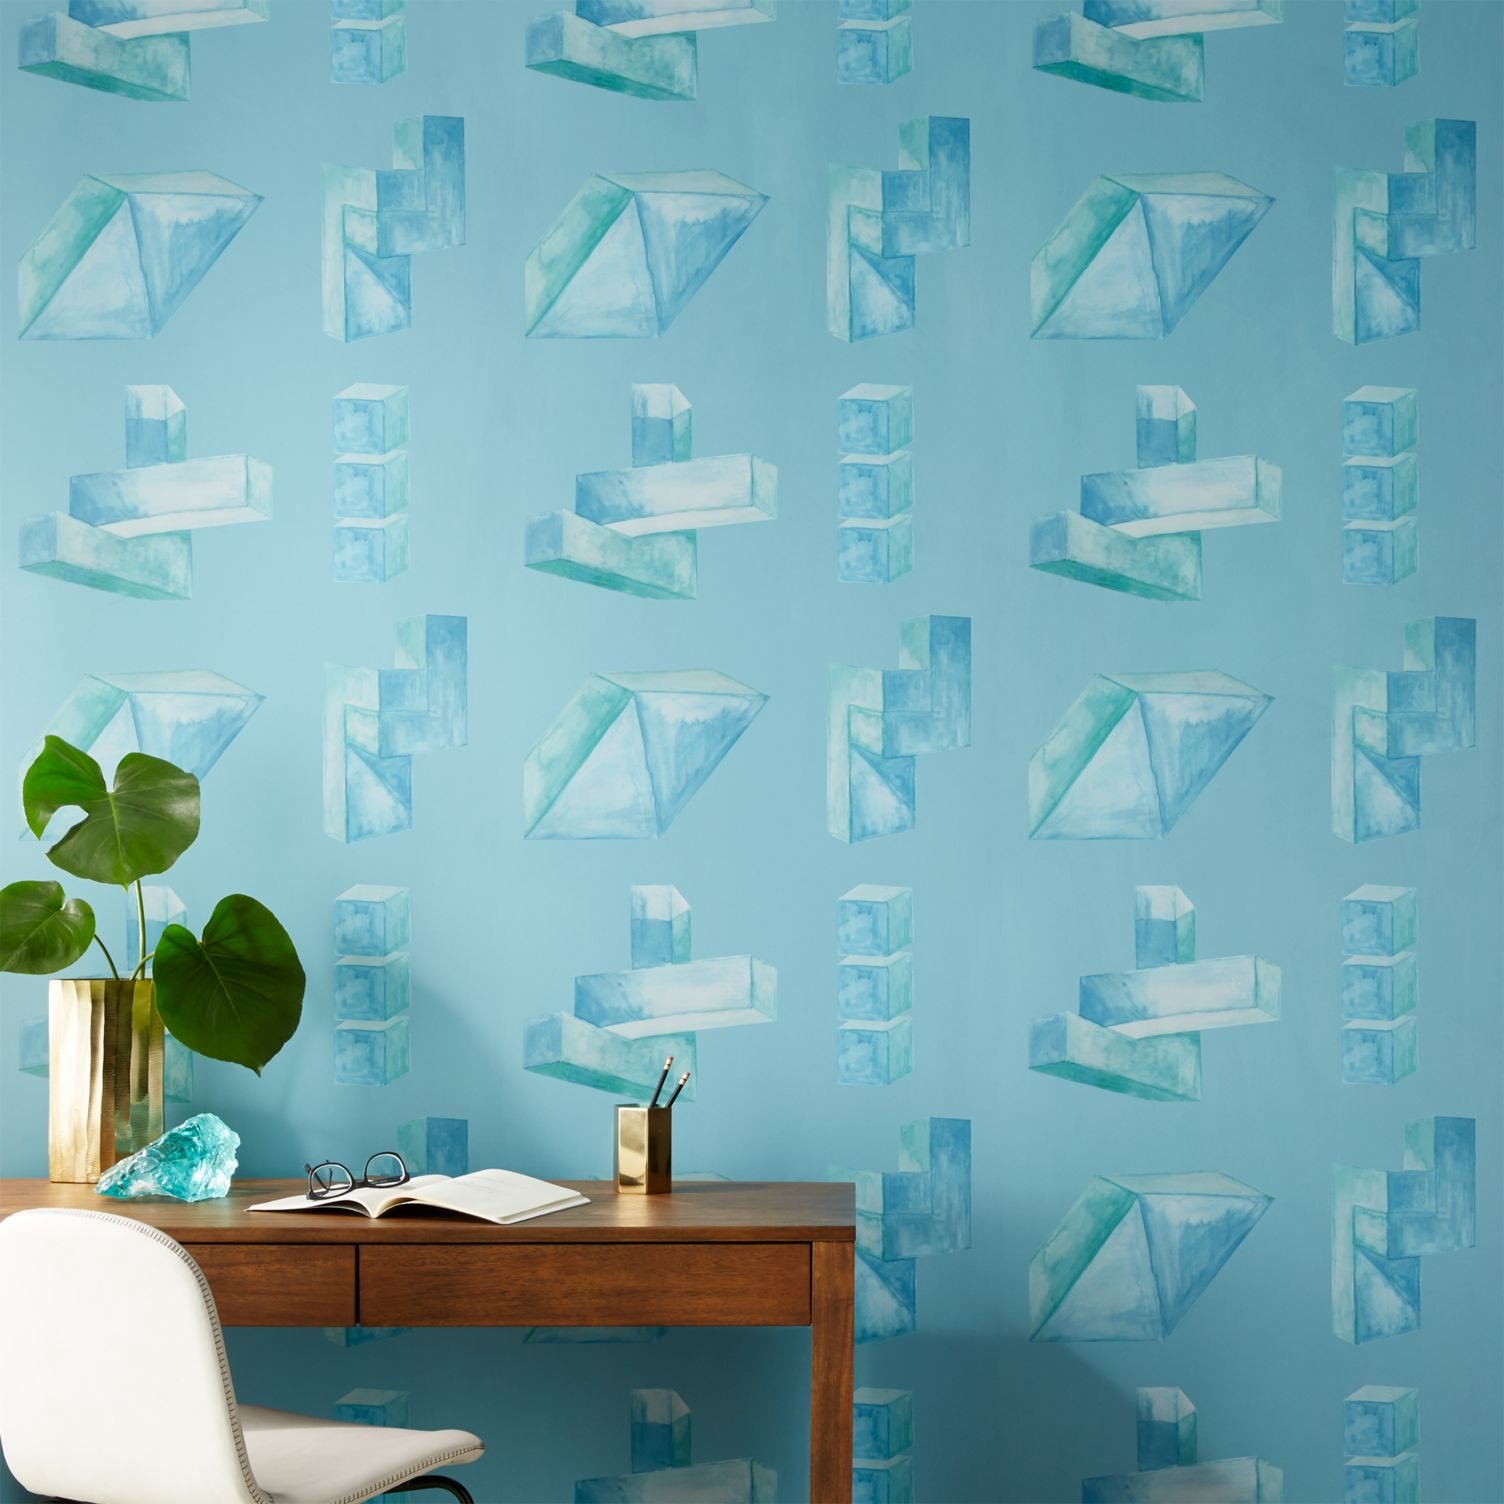 light blue and green wallpaper with soft brush geometric patterns